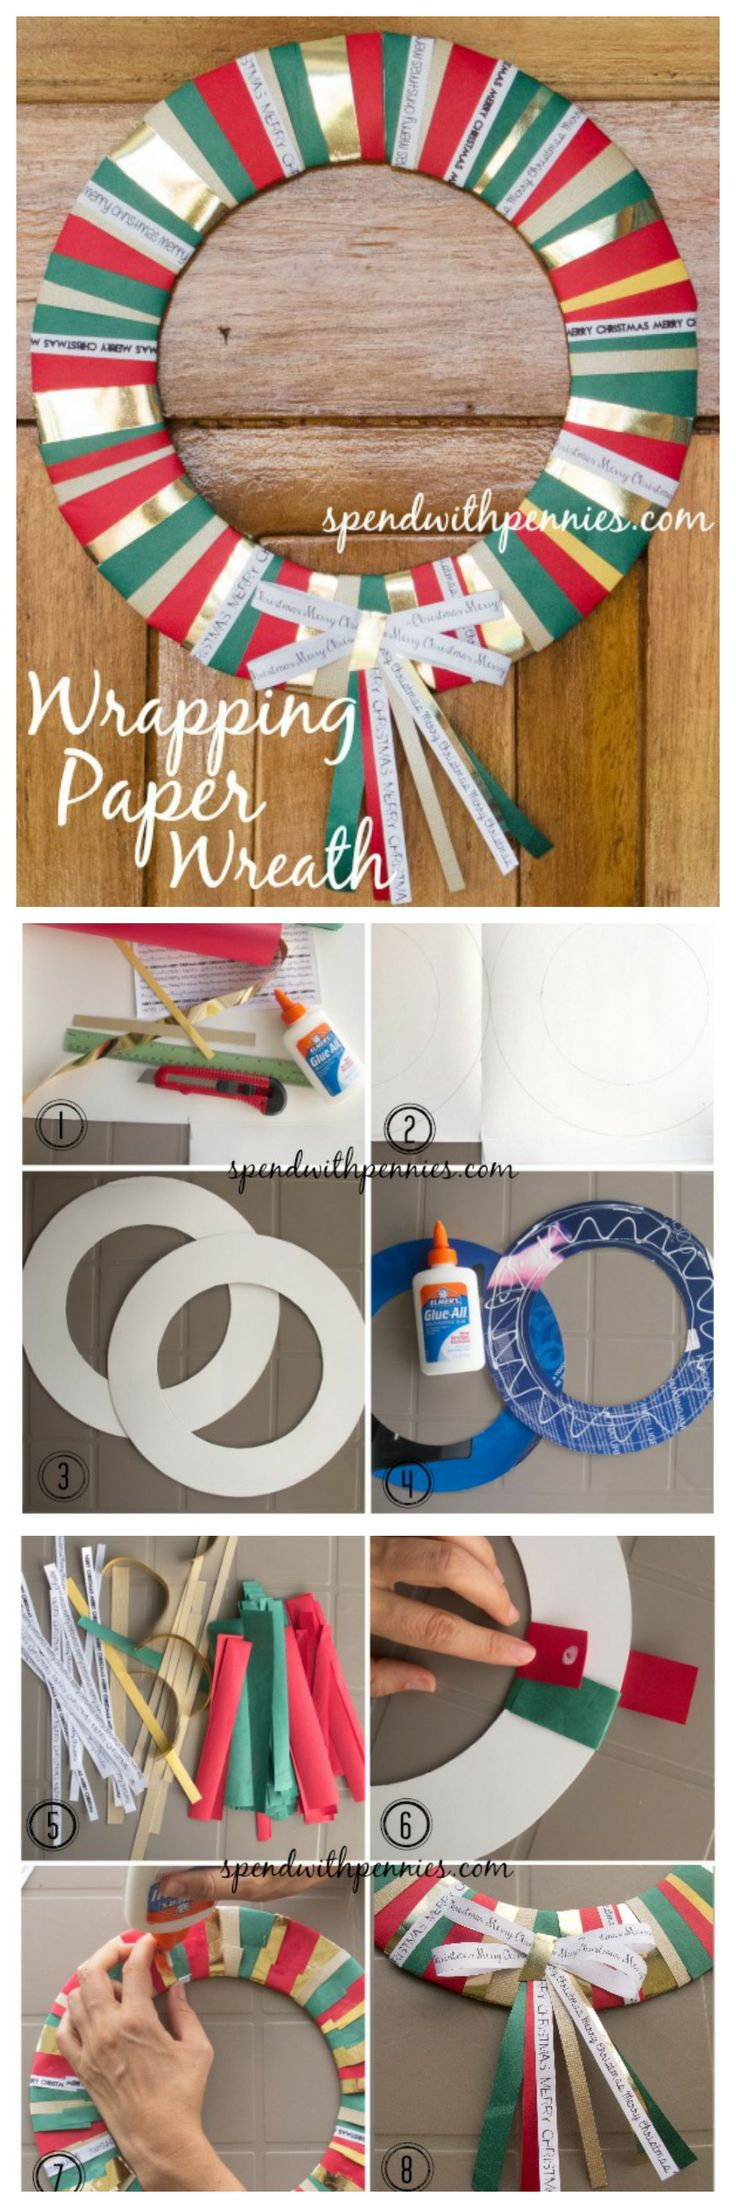 Make an easy Wrapping Paper Wreath!